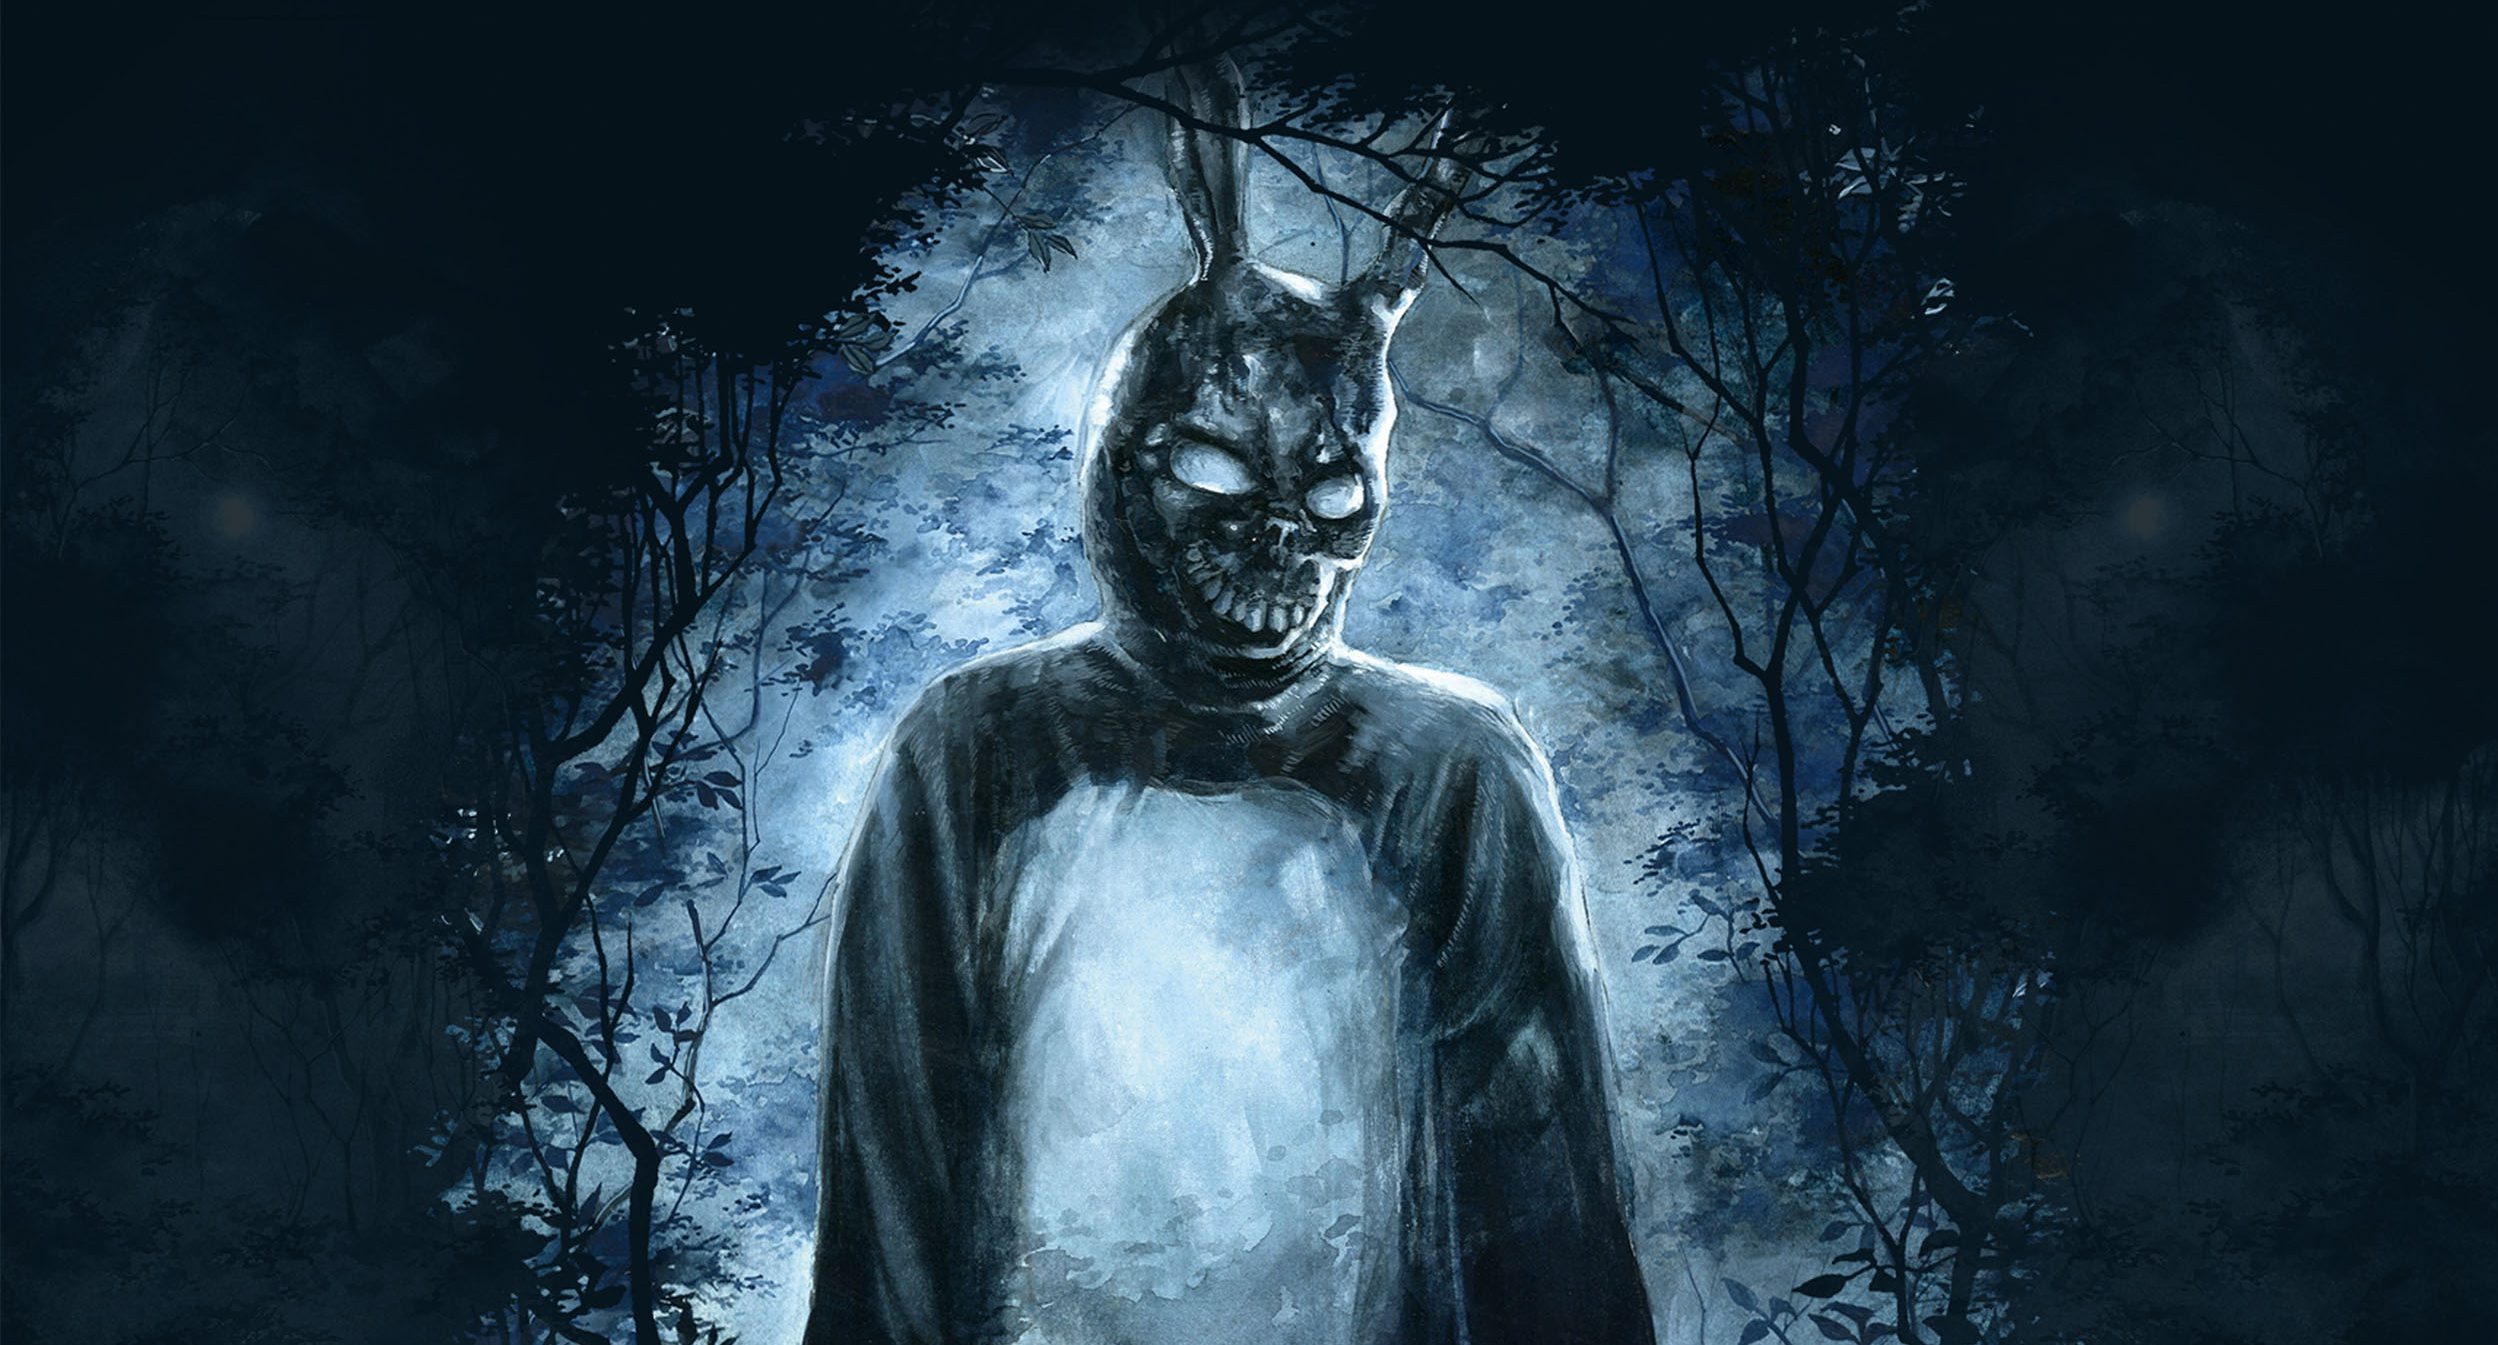 Donnie Darko Returns Director Richard Kelly Talks 80s Nostalgia Tears For Fears And The Possibility Of A Sequel Consequence Of Sound